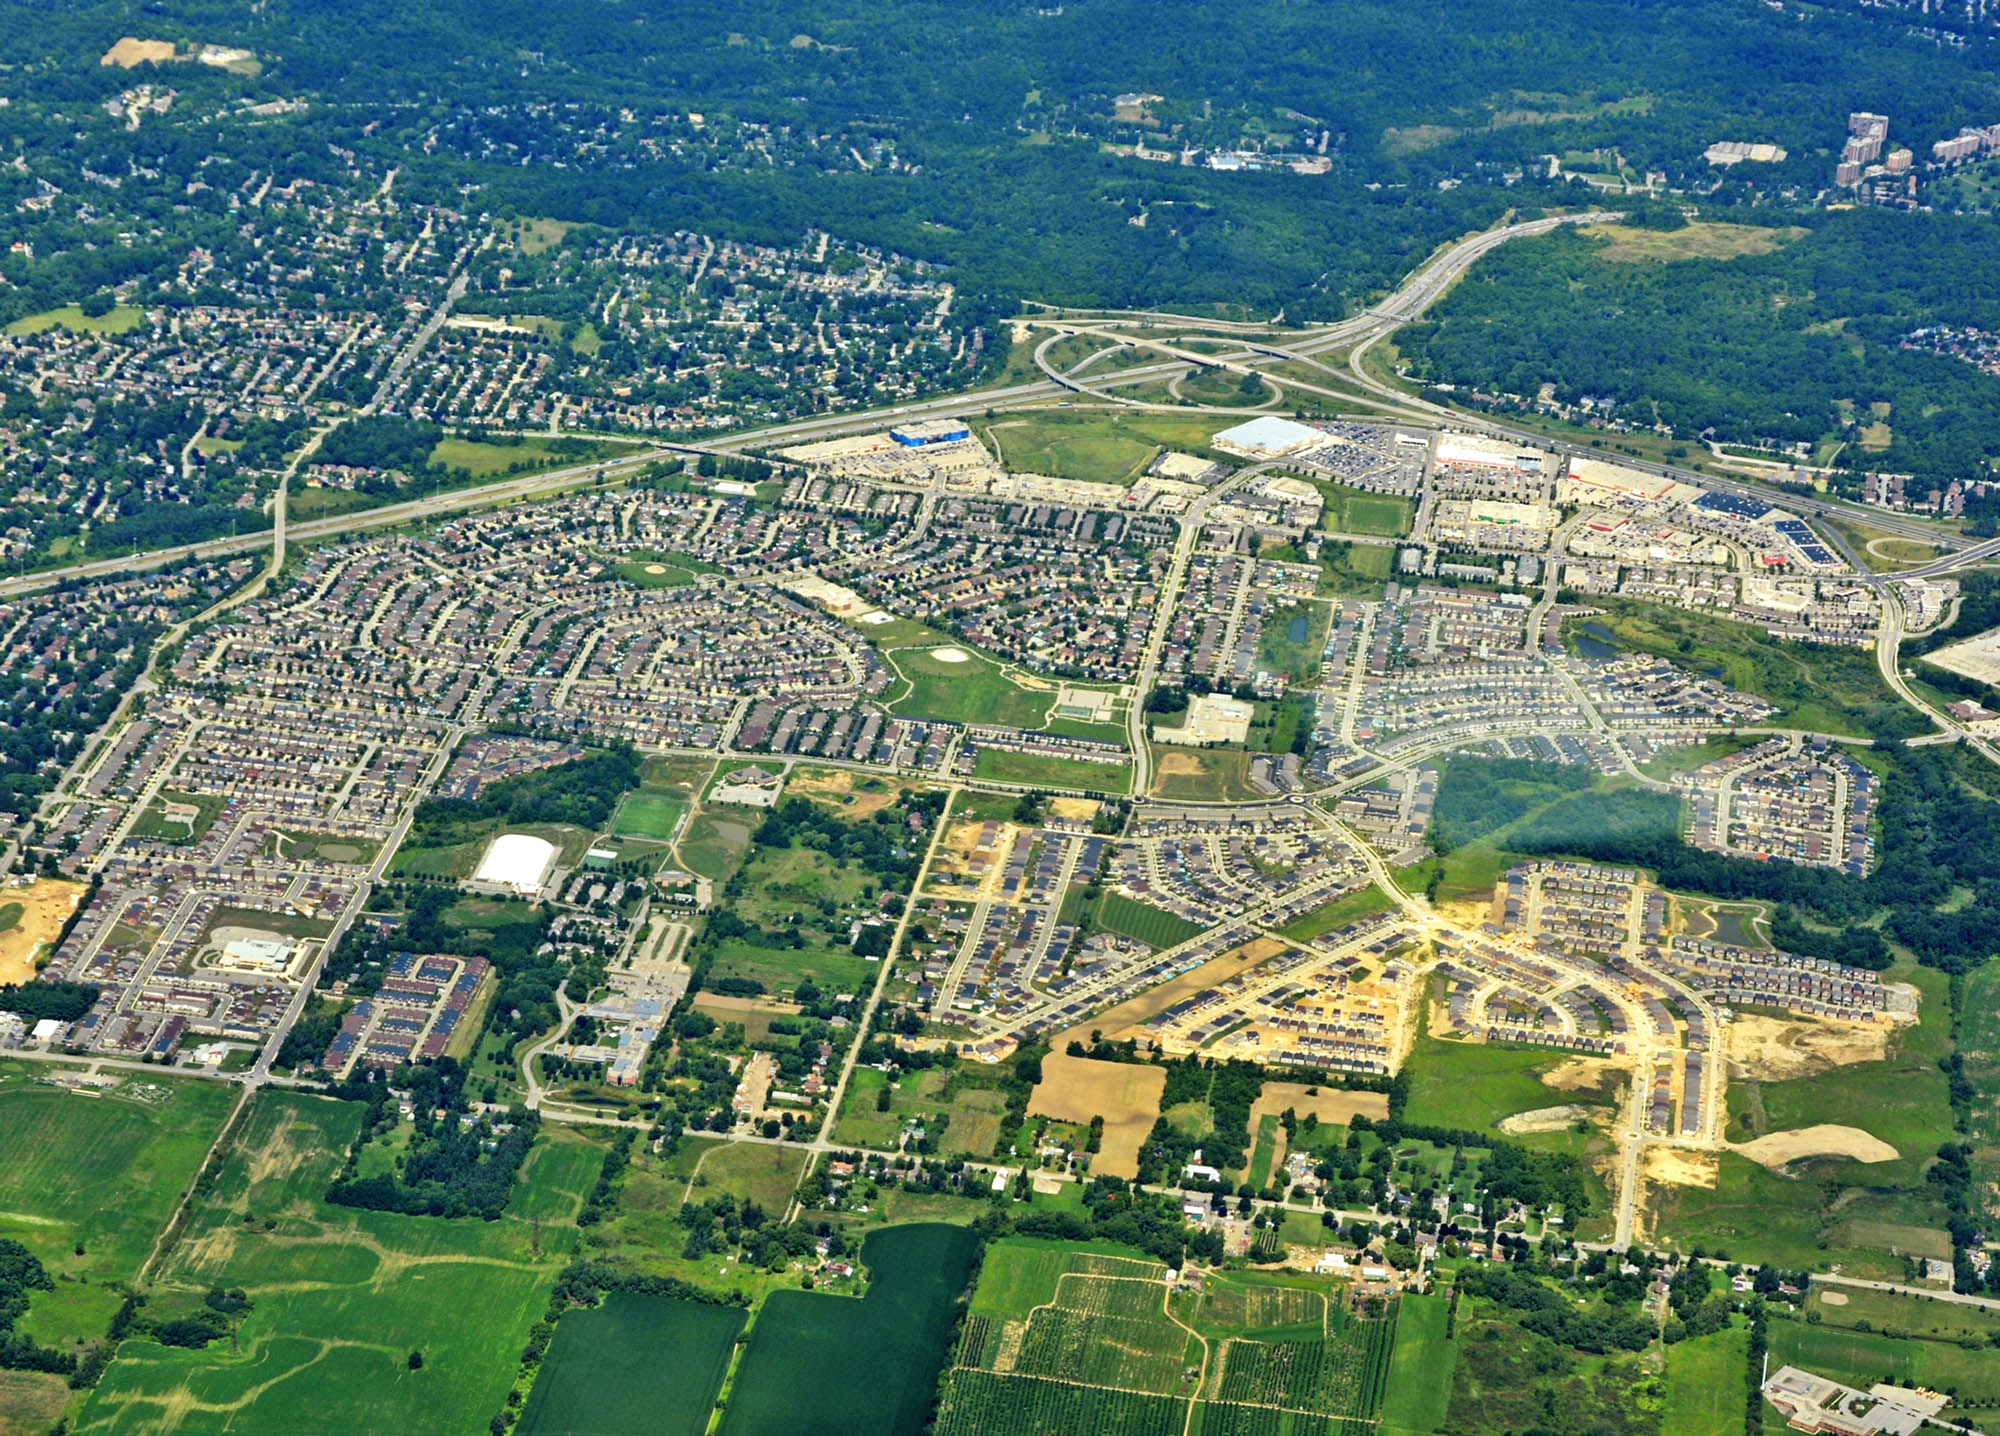 aerial view of the Ancaster Meadowlands, Hamilton Ontario Canada